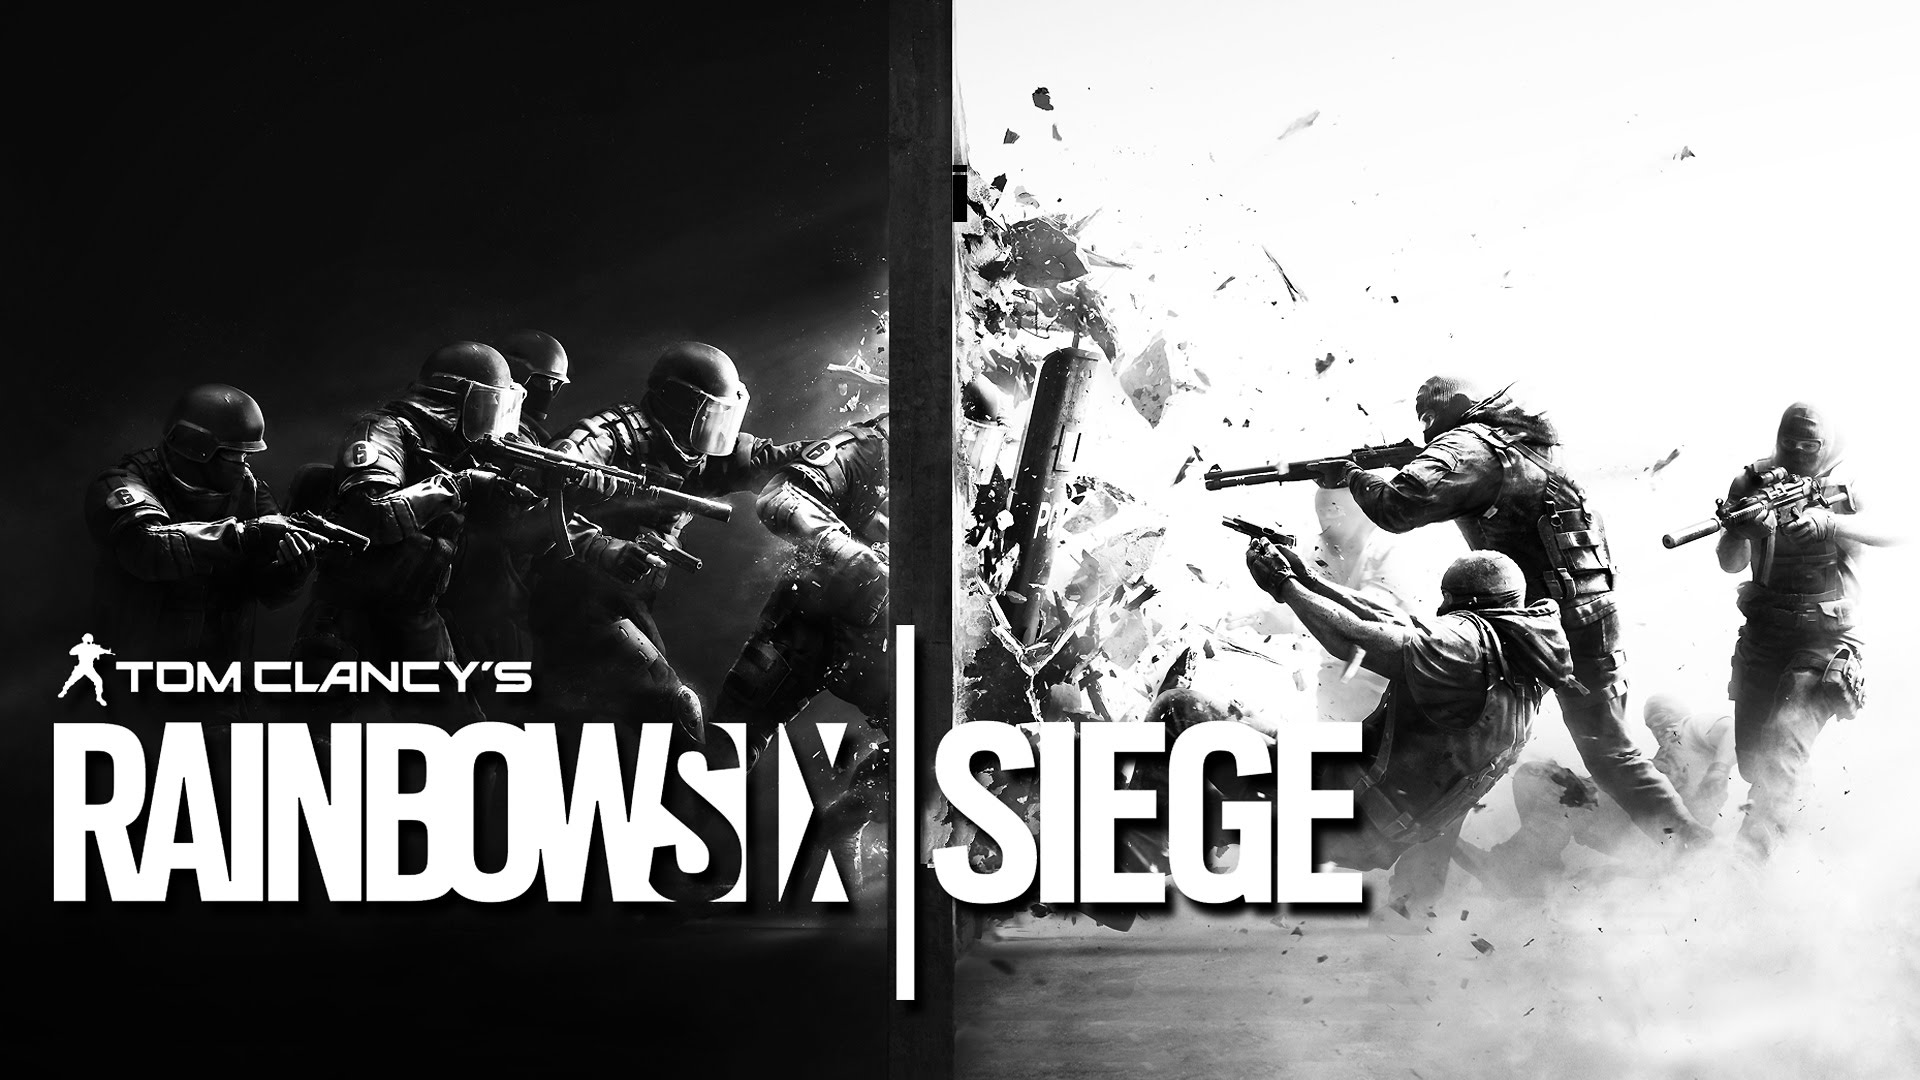 Tom Clancy's Rainbow Six: Siege telecharger gratuit de PC et Torrent